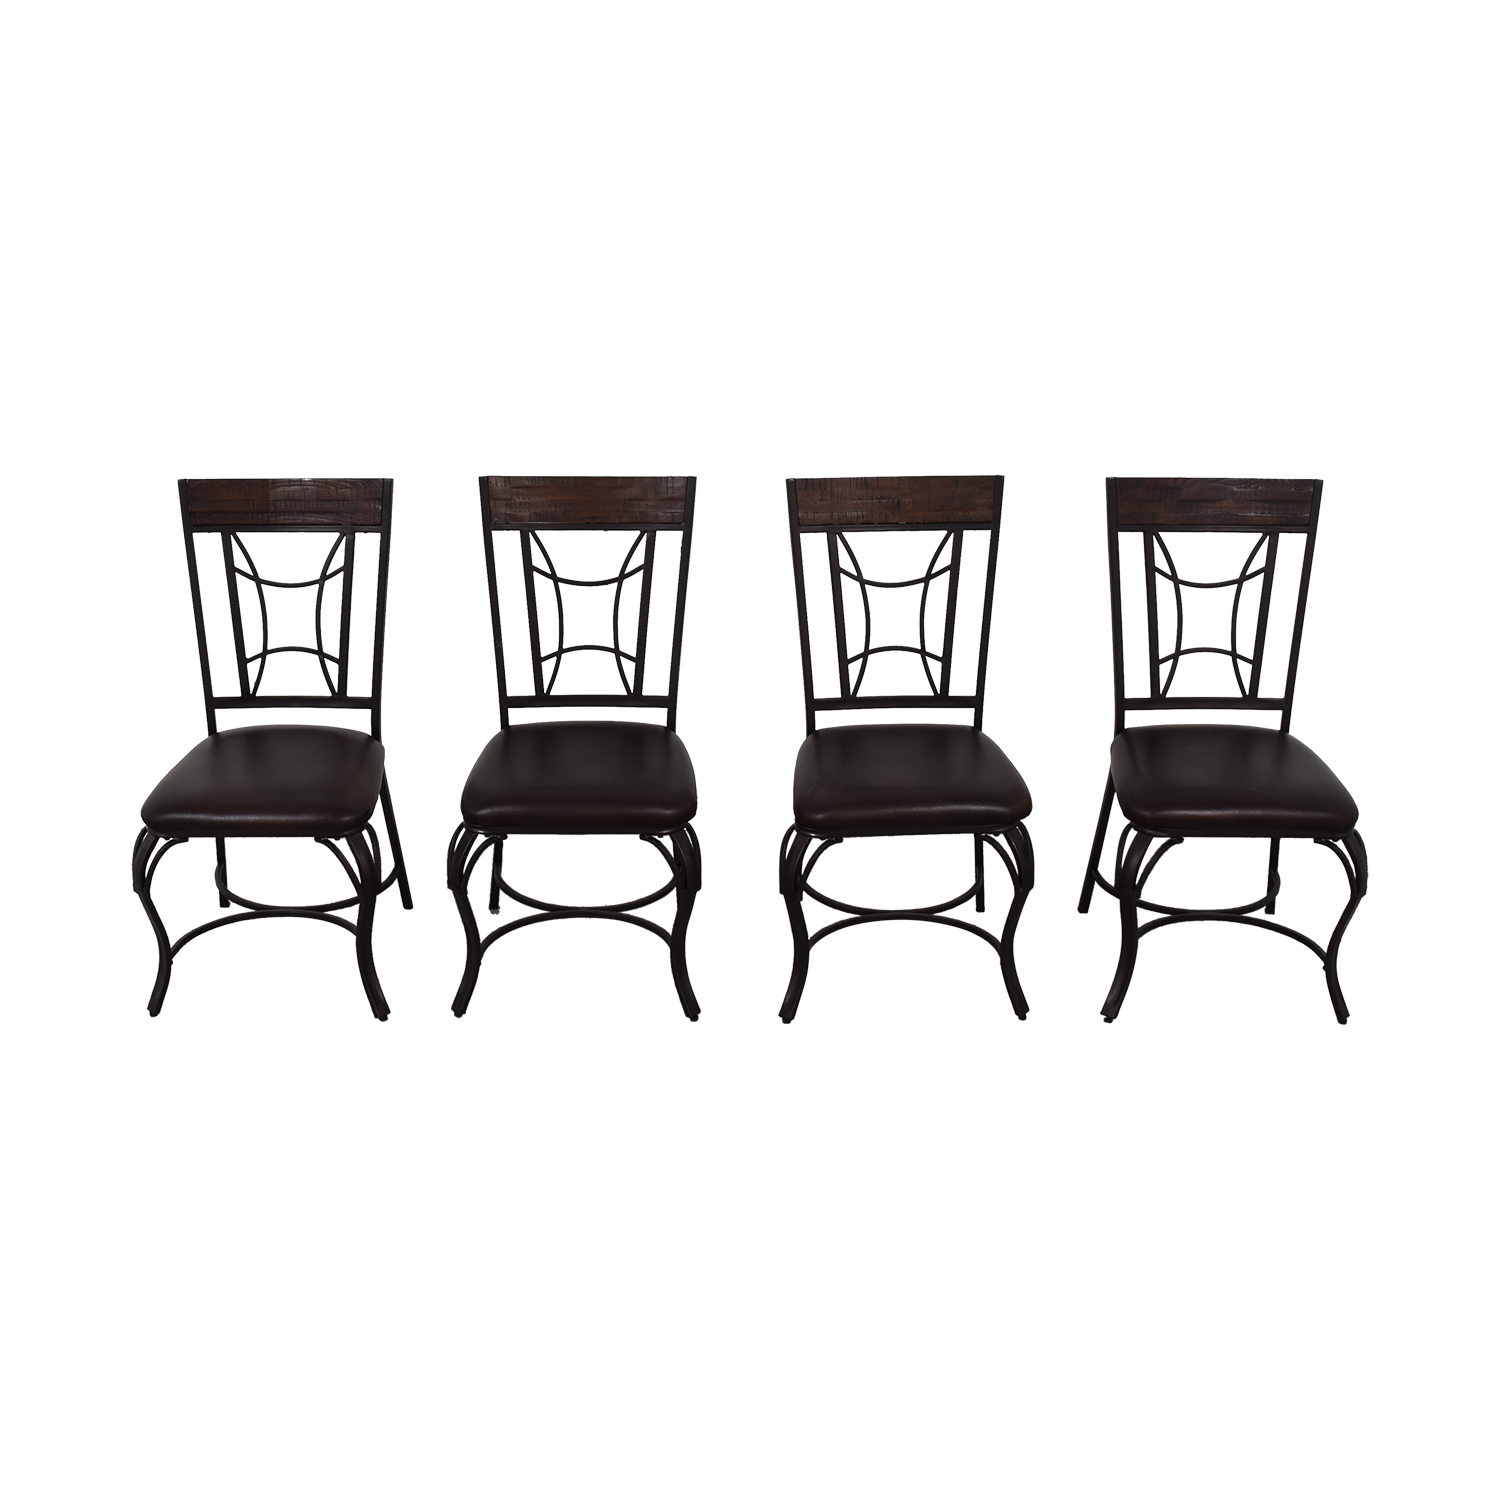 Hillsdale Furniture Hillsdale Furniture Dining Chairs second hand